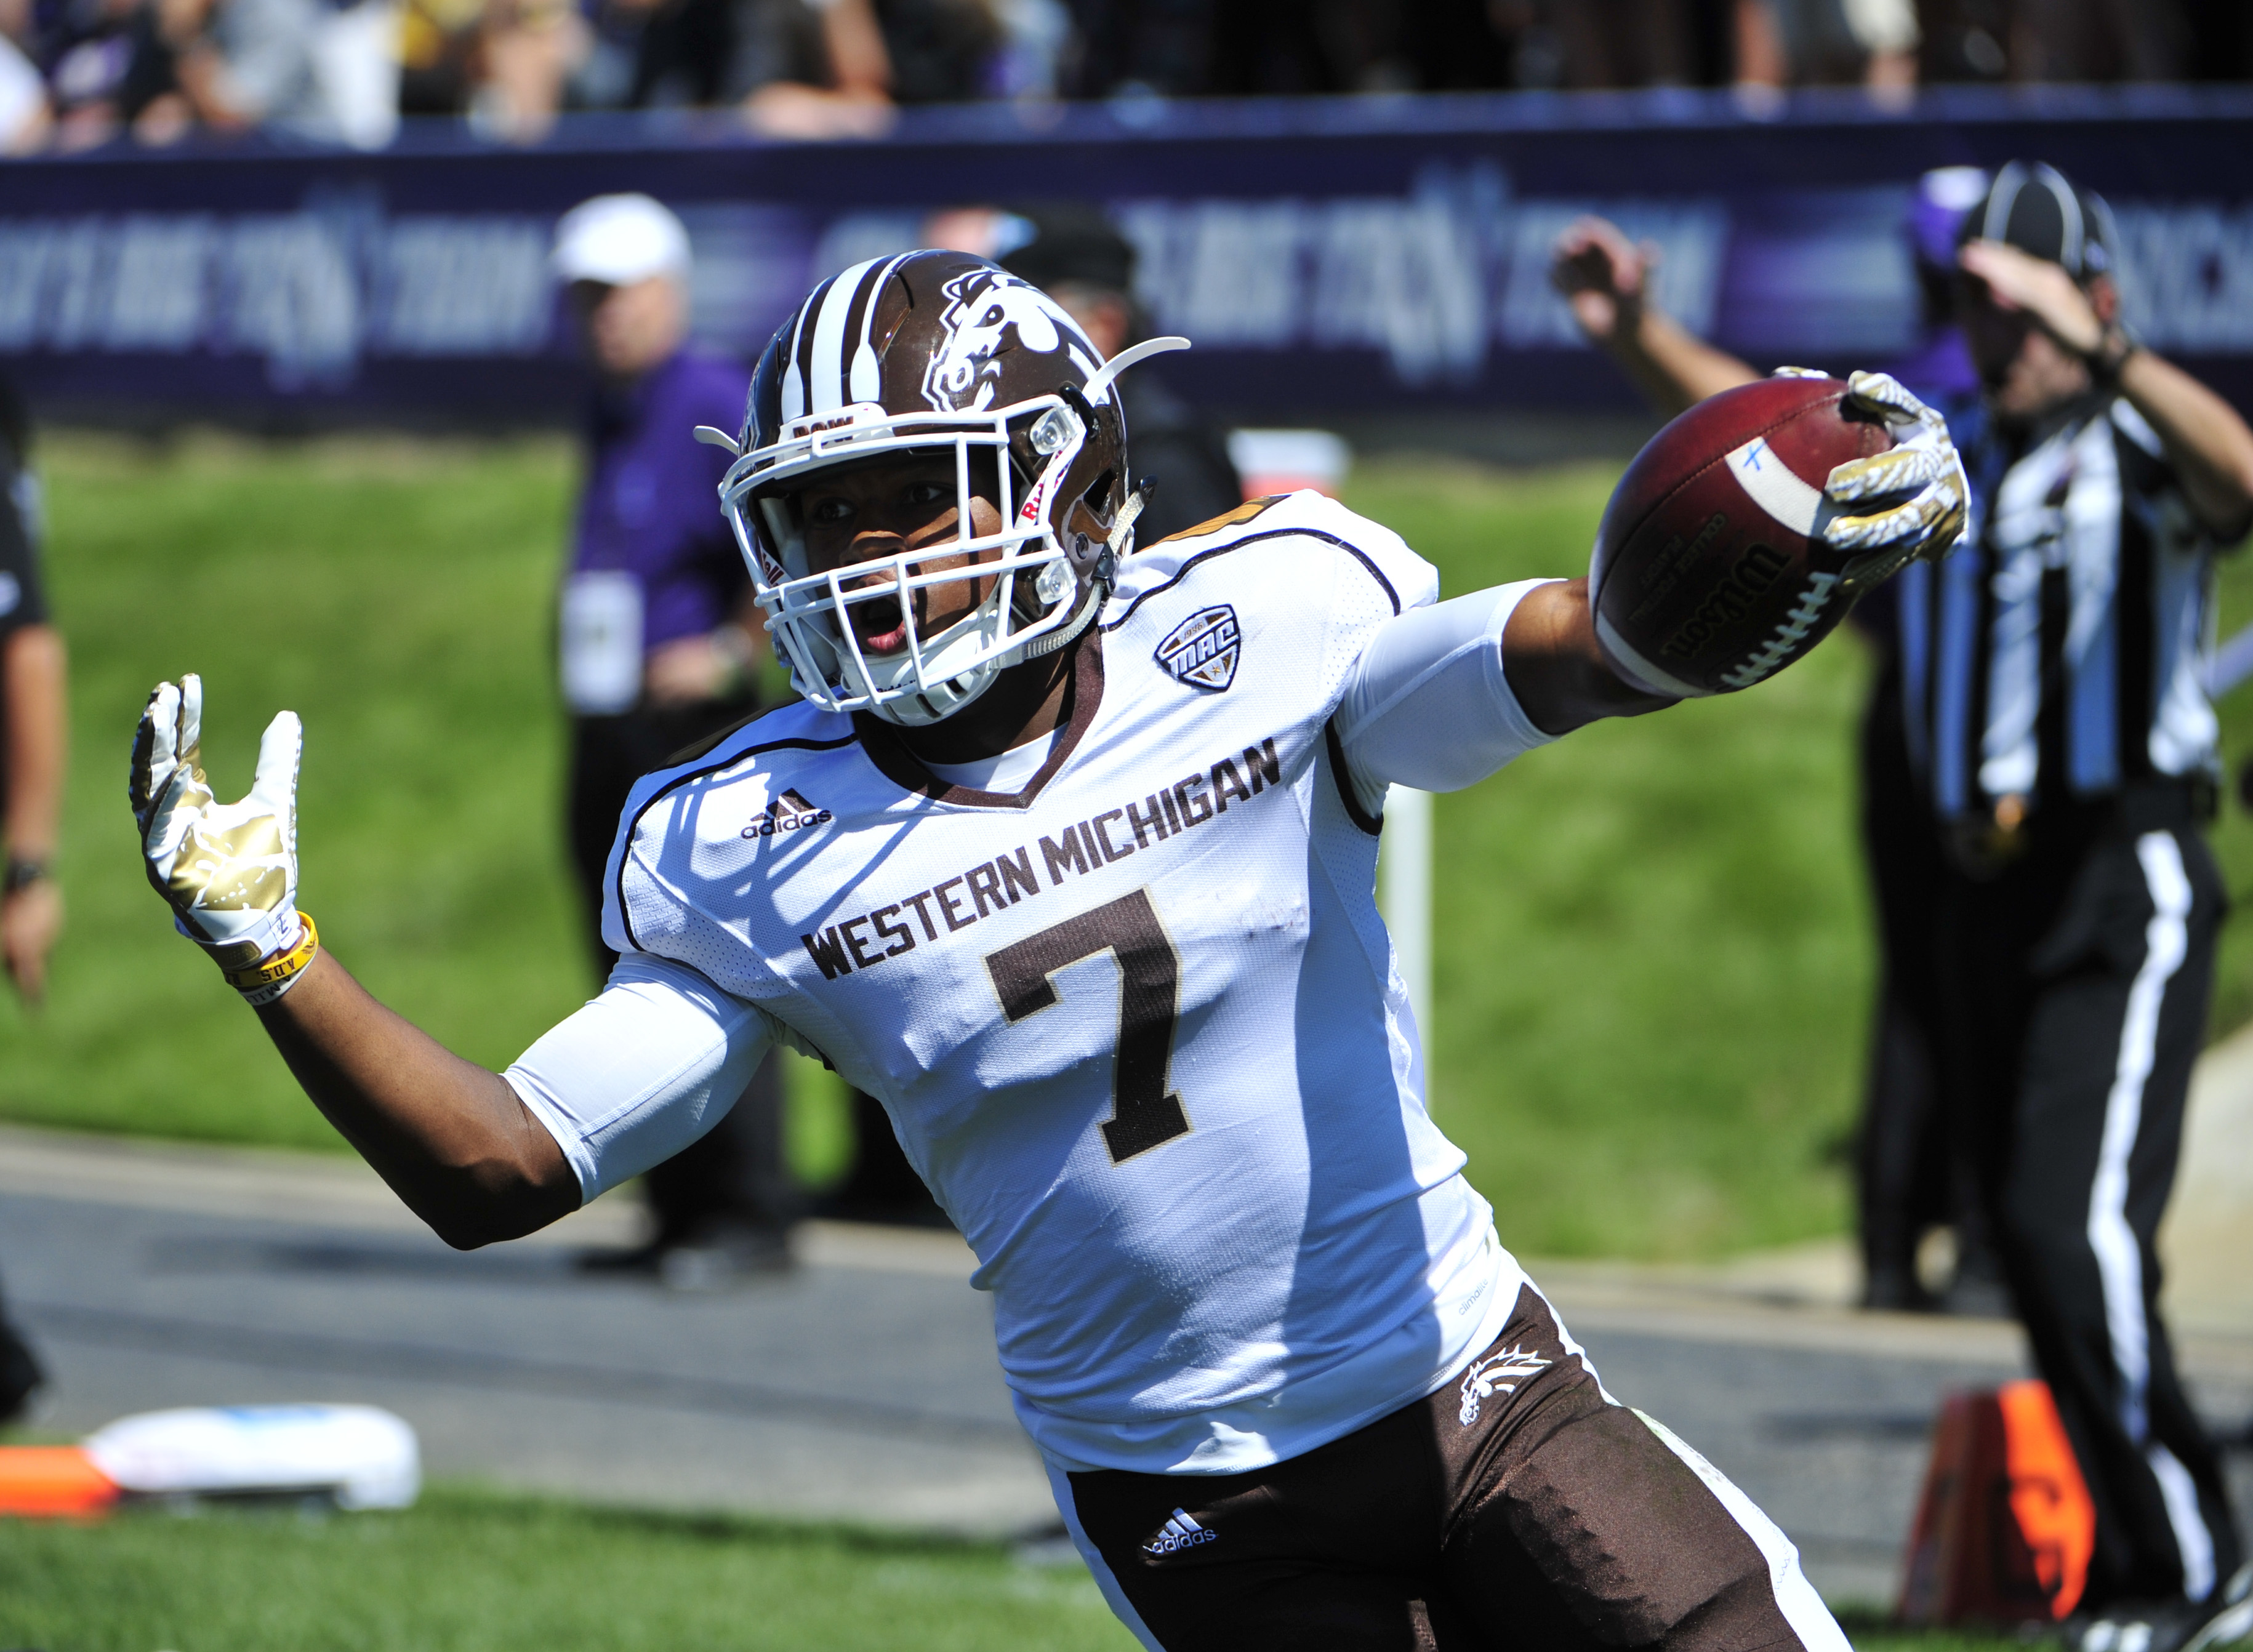 D'Wayne Eskridge #7 of the Western Michigan Broncos reacts after scoring a touchdown against the Northwestern Wildcats during the second half on September 3, 2016 at Ryan Field in Evanston, Illinois. the Western Michigan Broncos won 22-21.